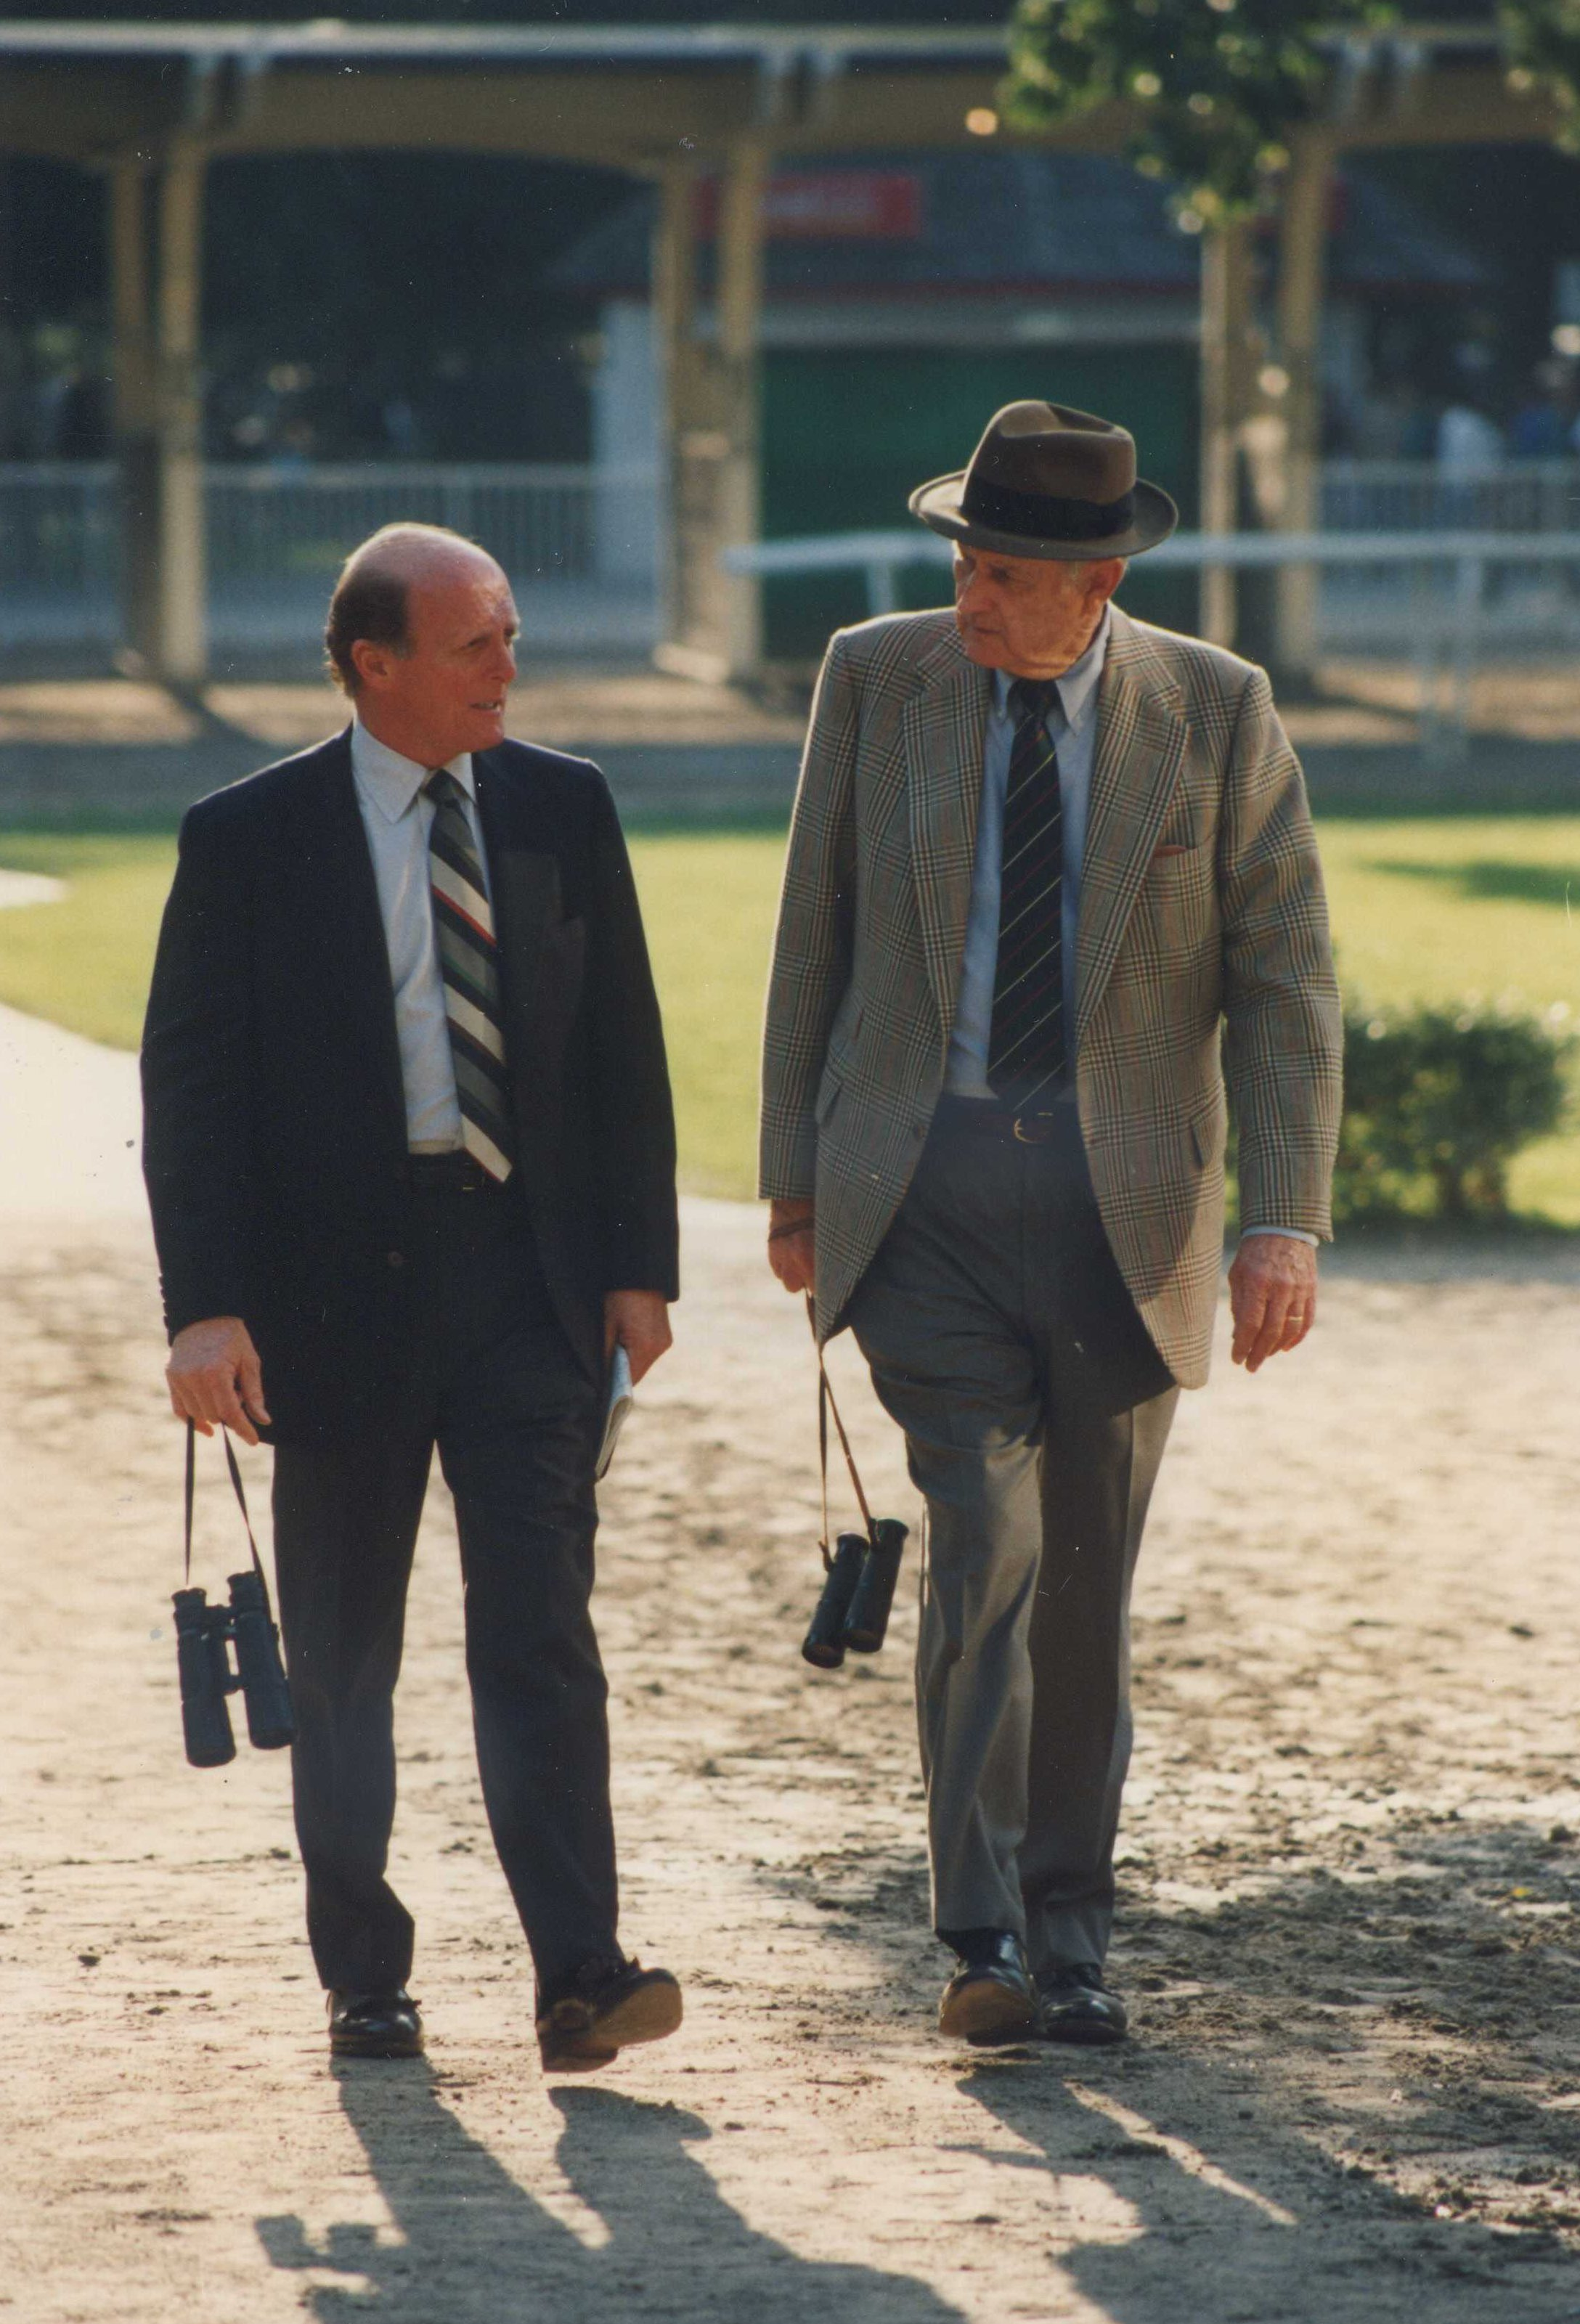 Hall of Fame trainers LeRoy Jolley and MacKenzie Miller walking in the Belmont Park paddock in 1992 (Barbara D. Livingston/Museum Collection)